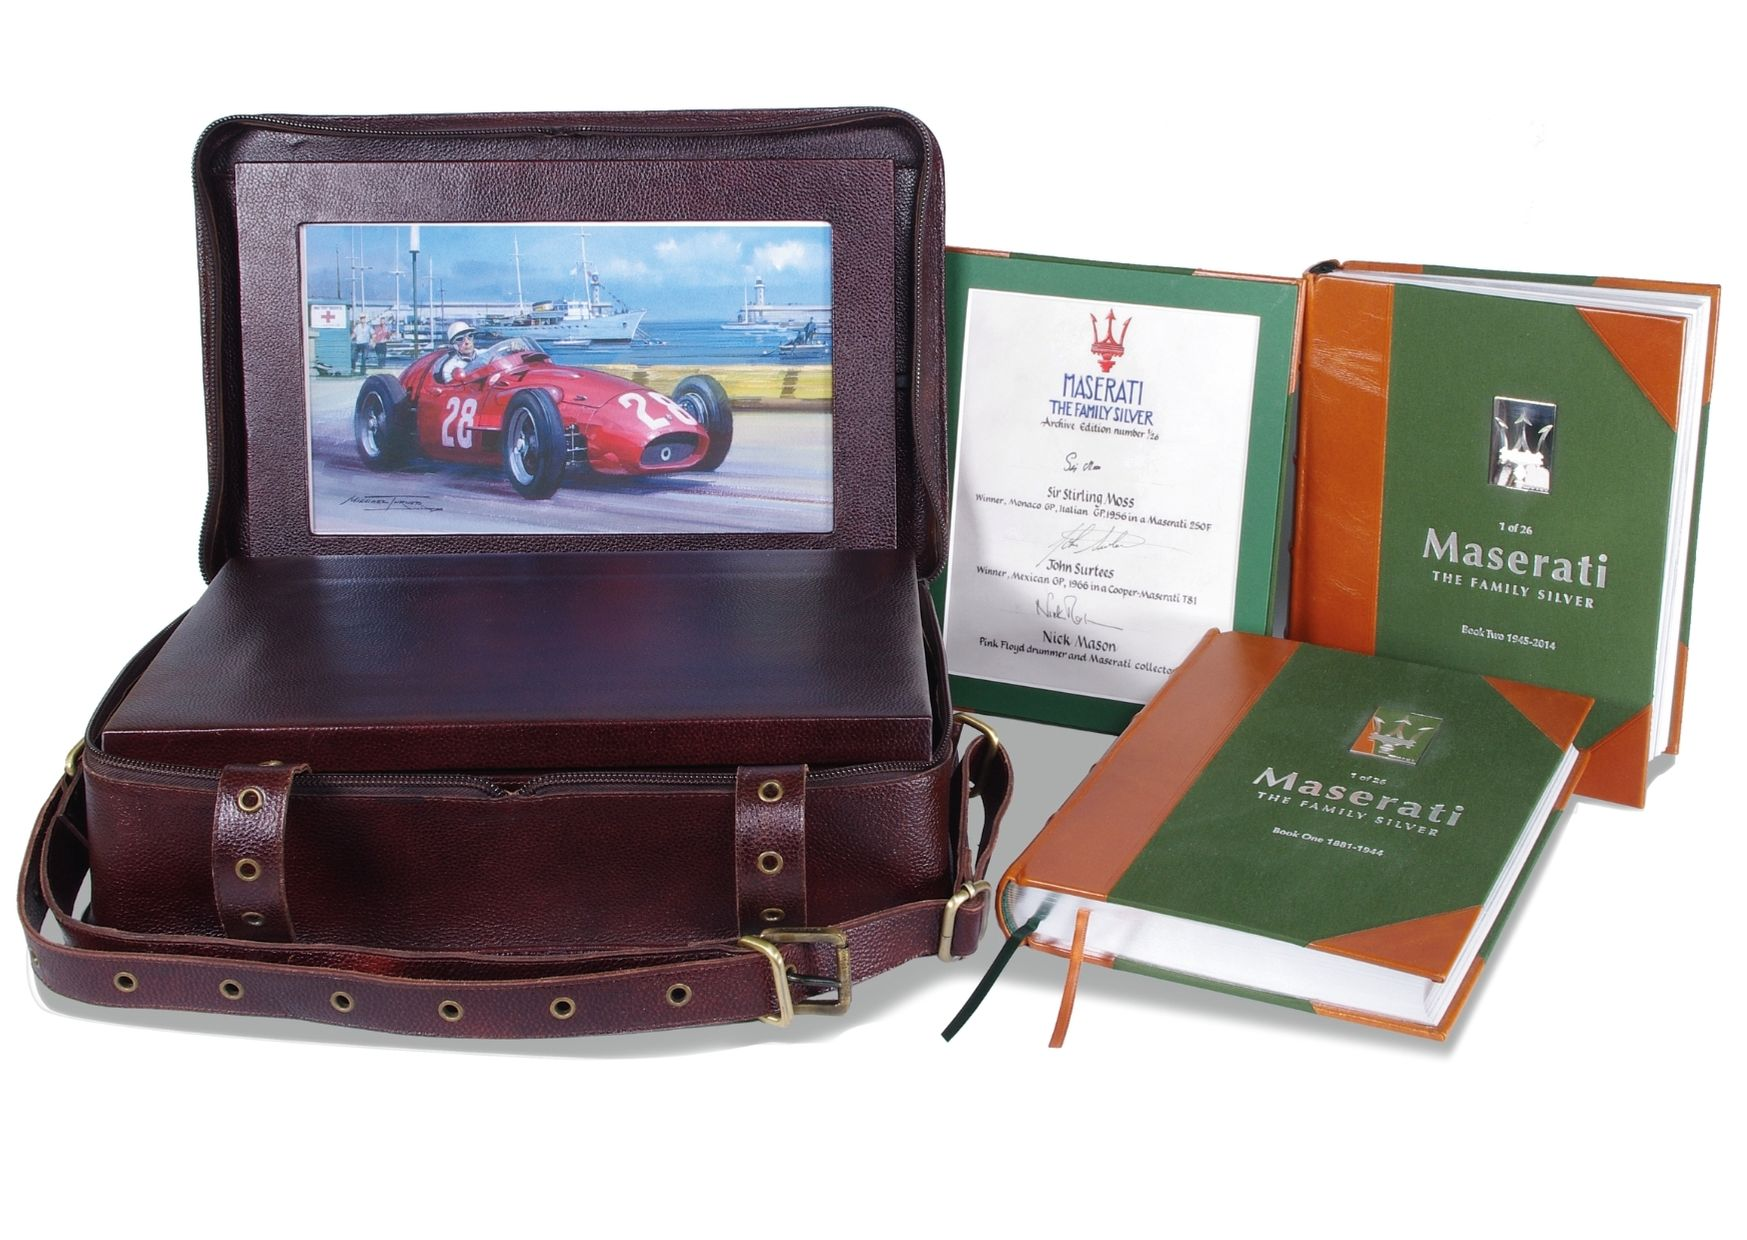 WIN a unique copy of Maserati: The Family Silver worth £12,950